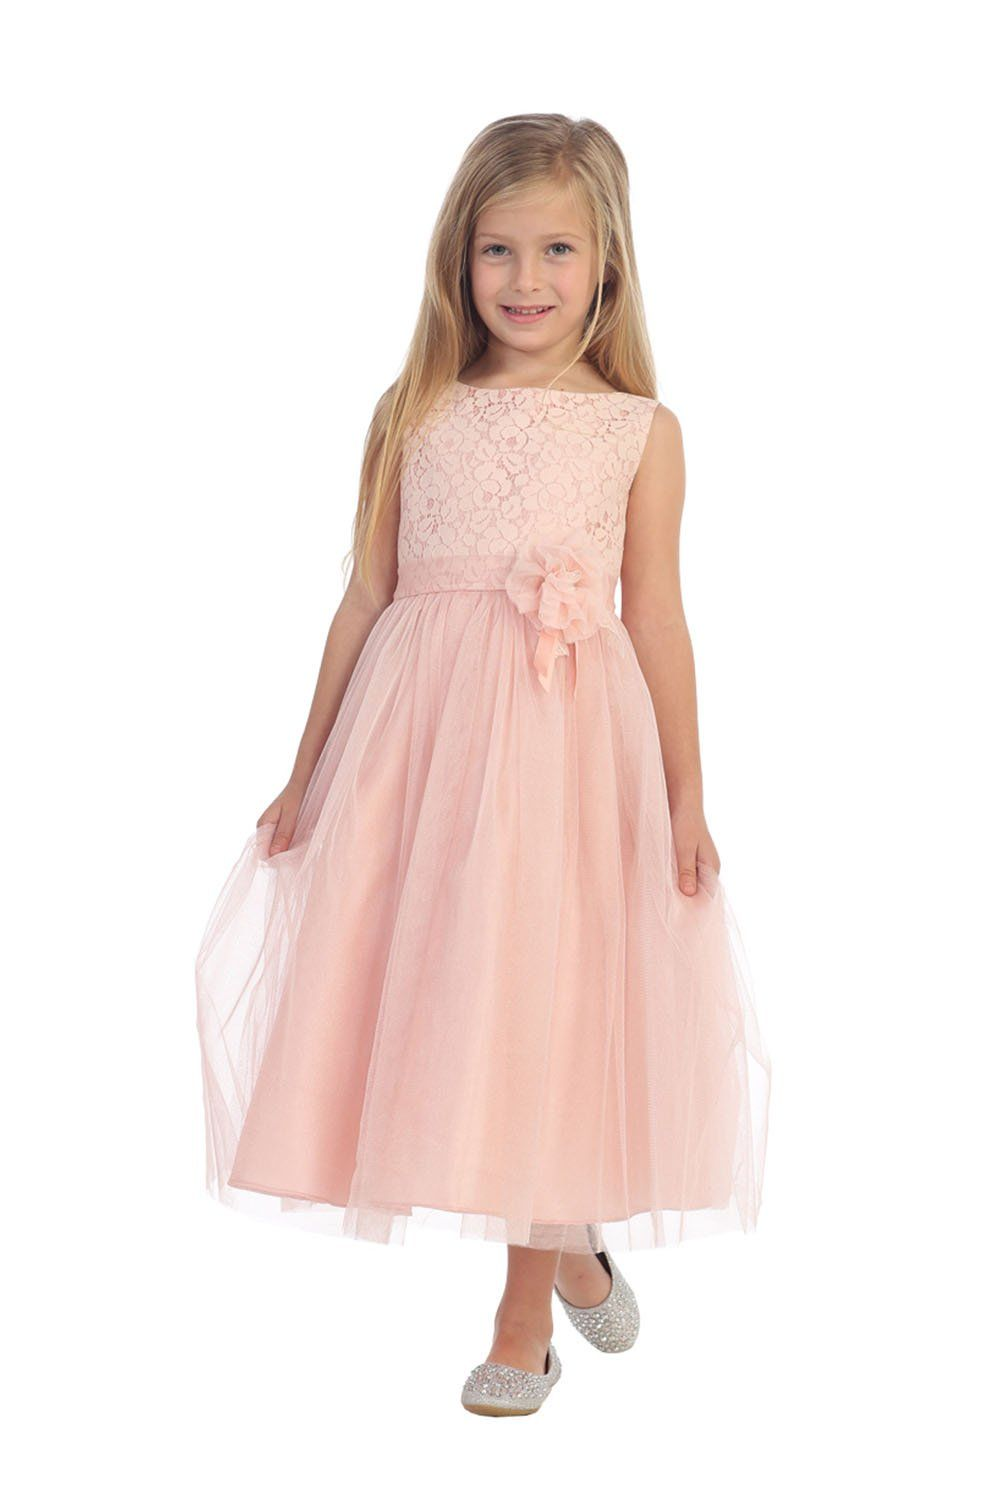 Blush Sleeveless Lace Detailing Flower Girl Dress with Overlay Tulle ...